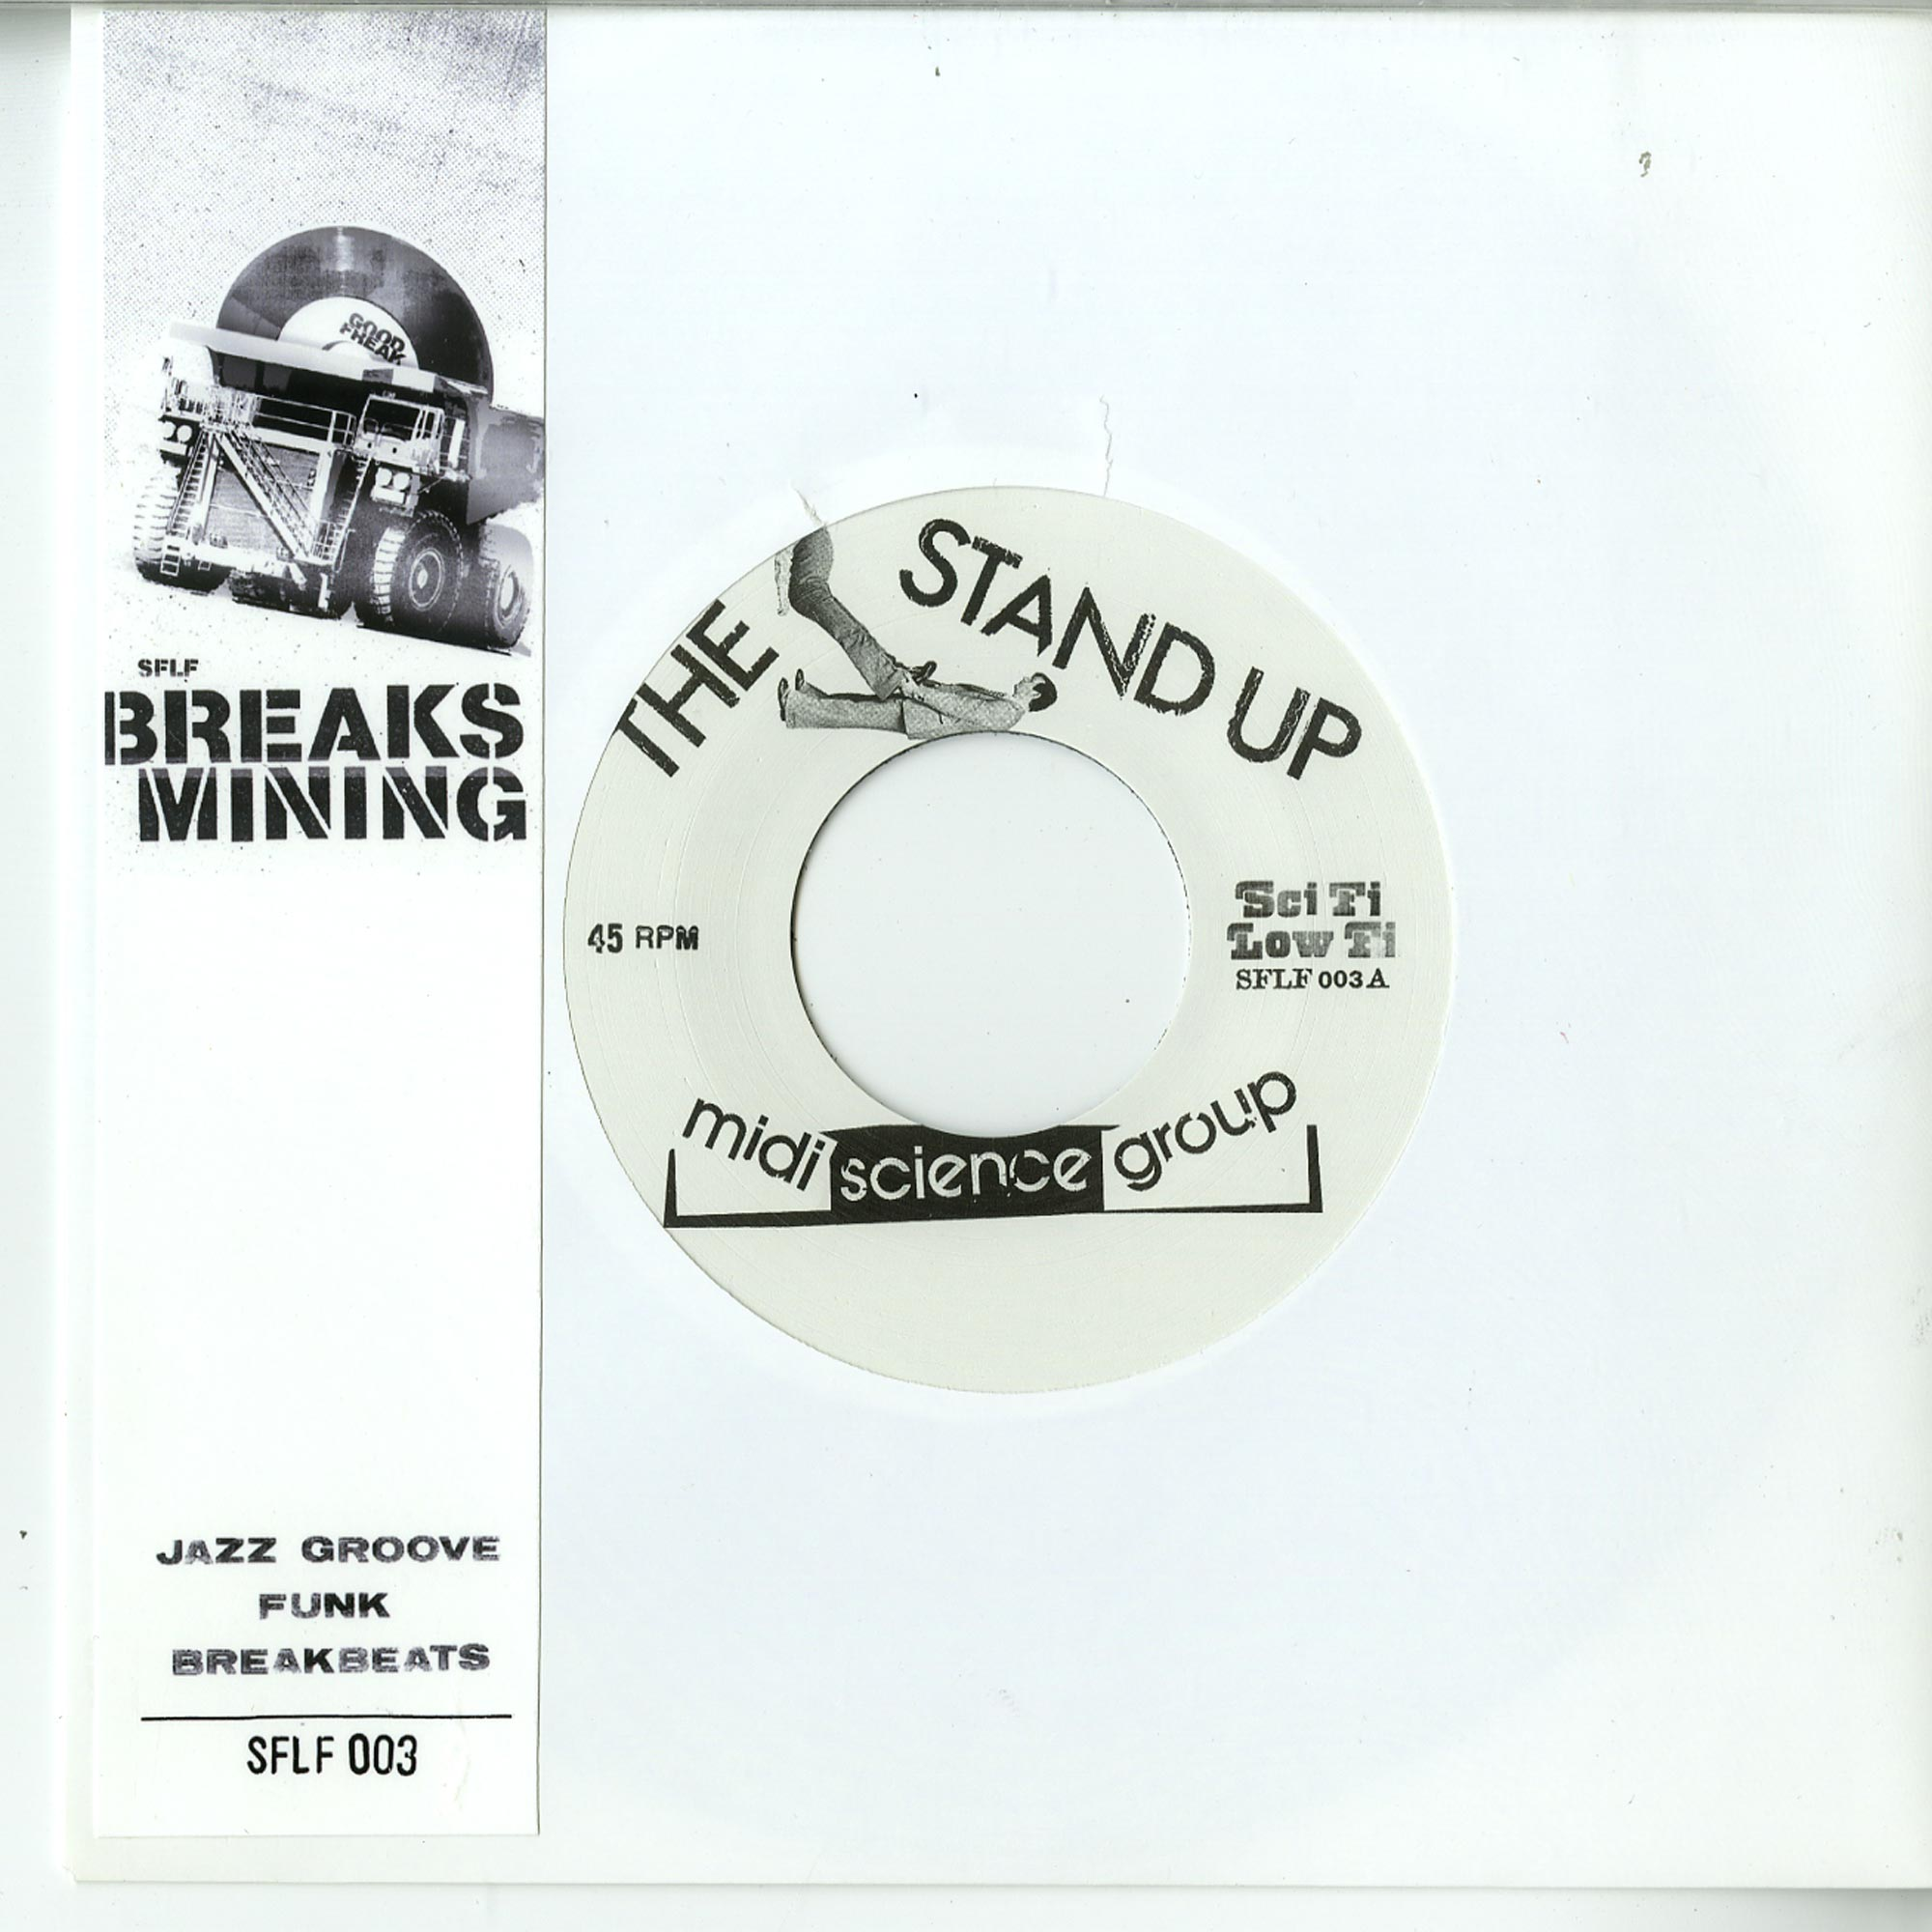 Midi Science Group - THE STAND UP / GOOD FREAK